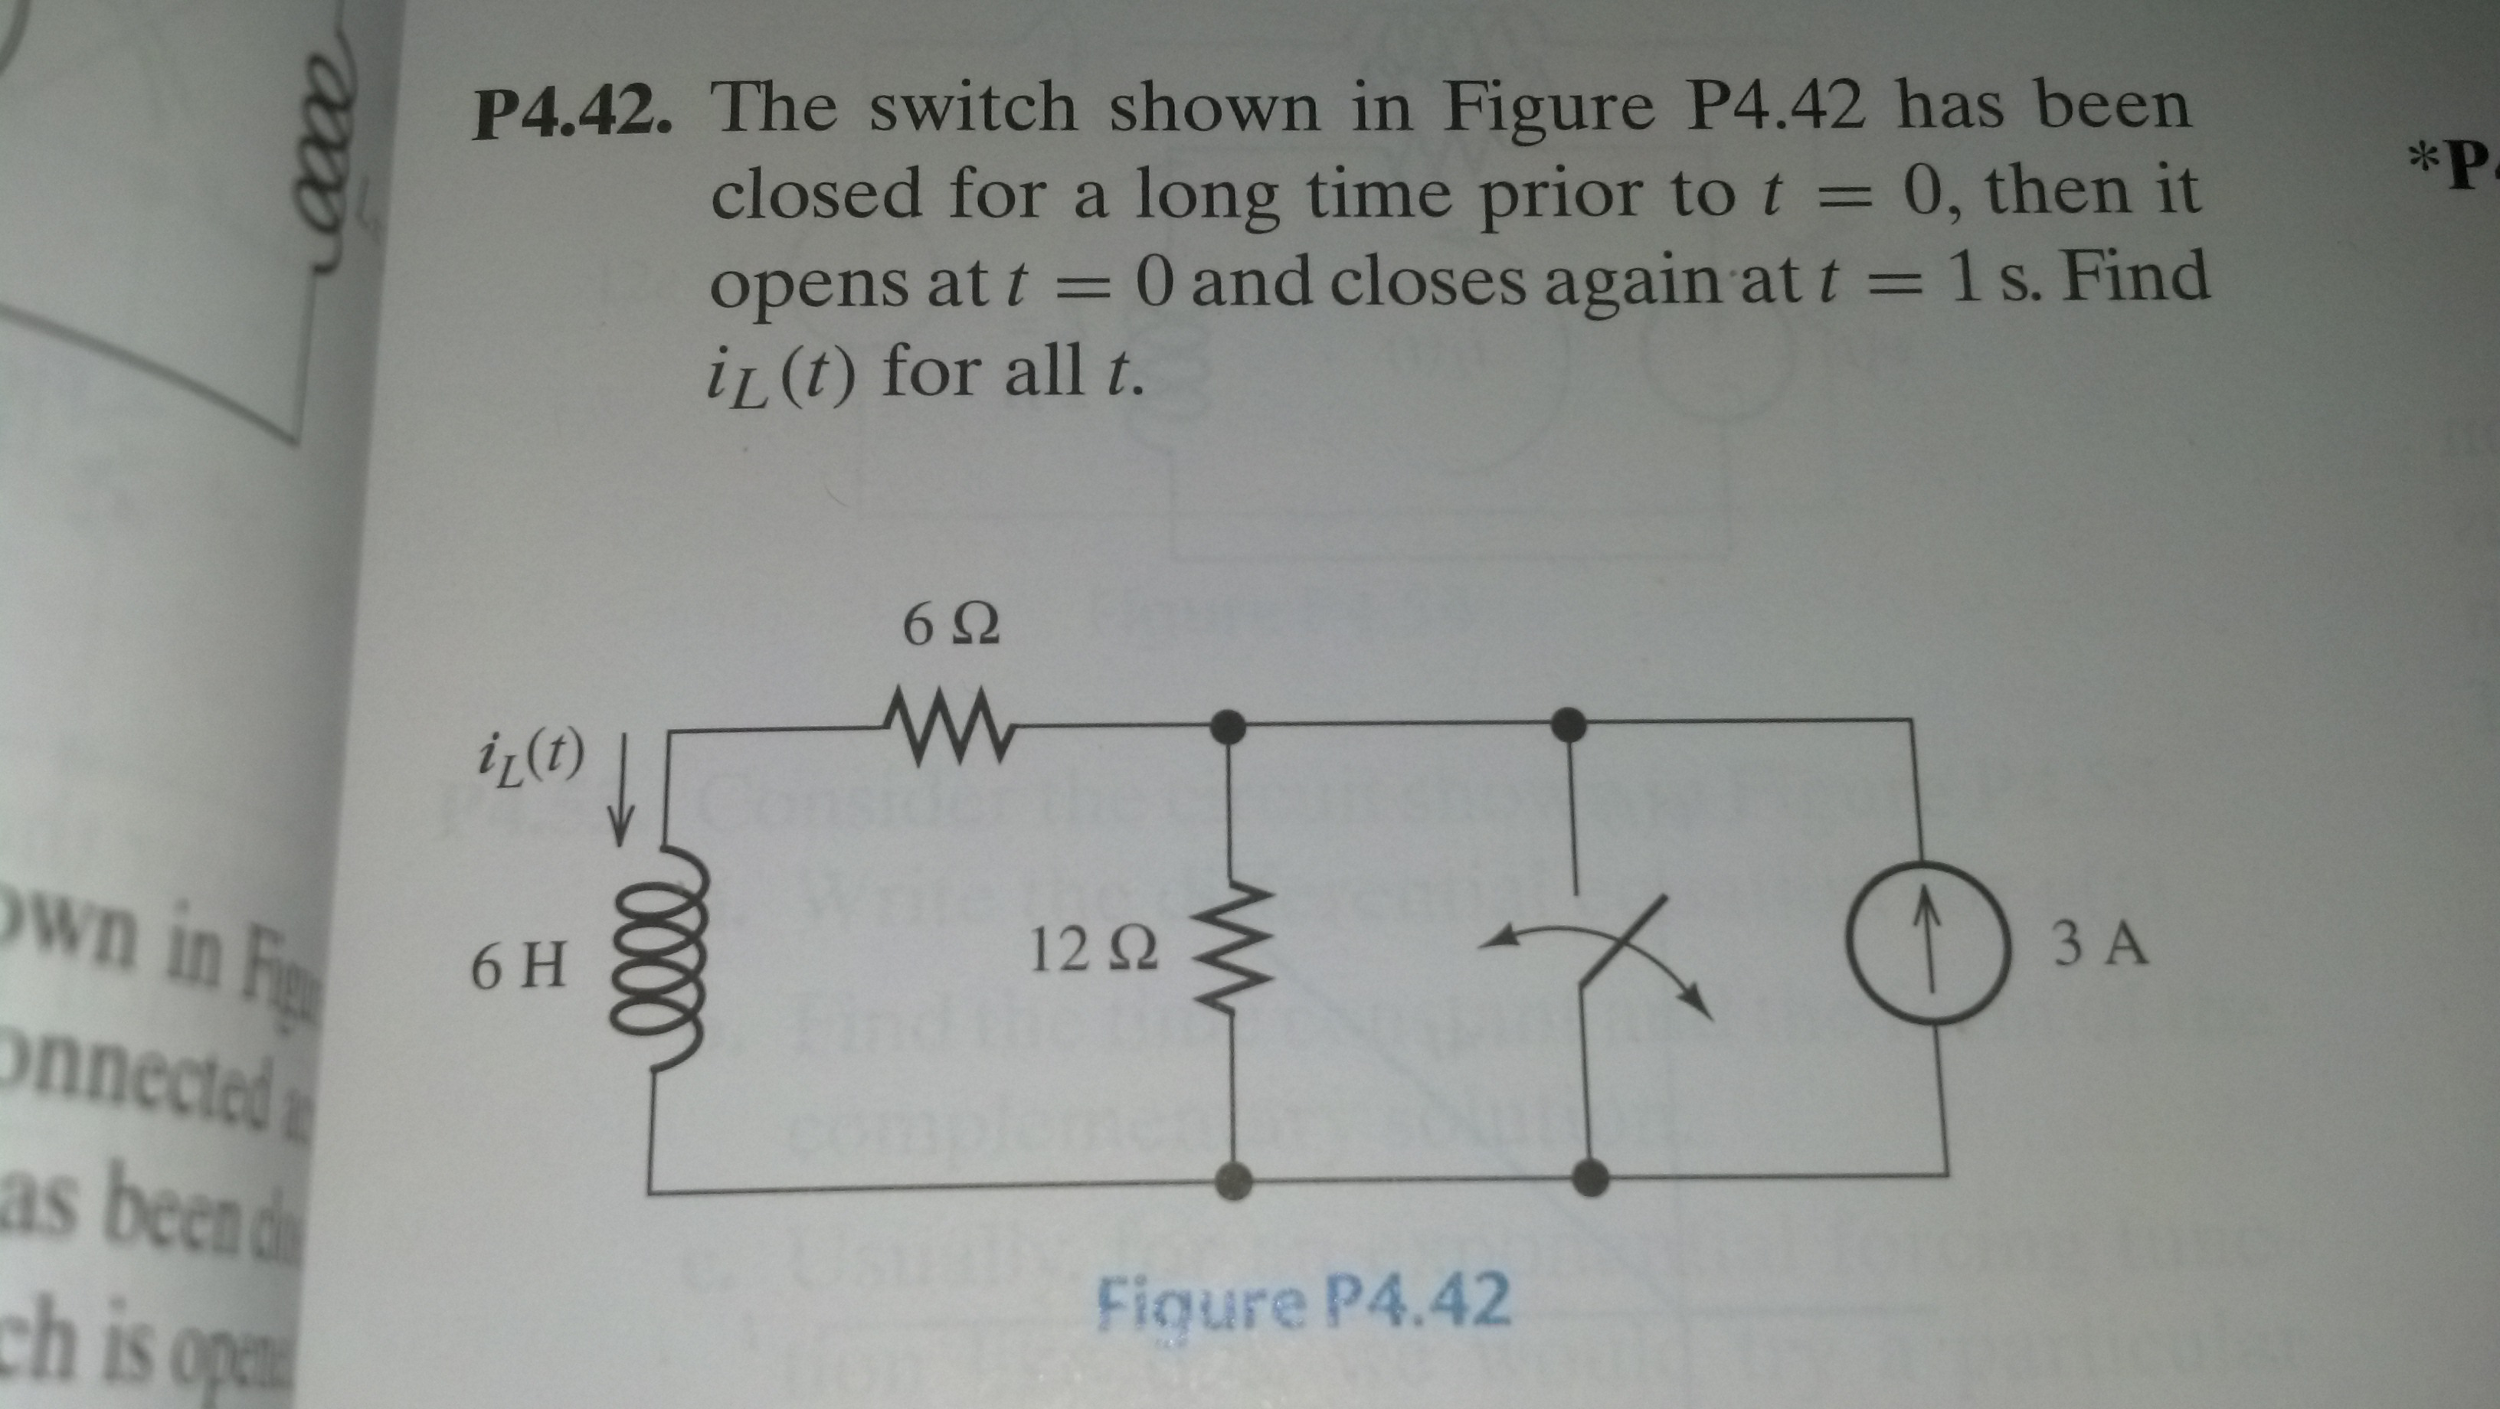 The switch shown in figure p4.42 has been closed f